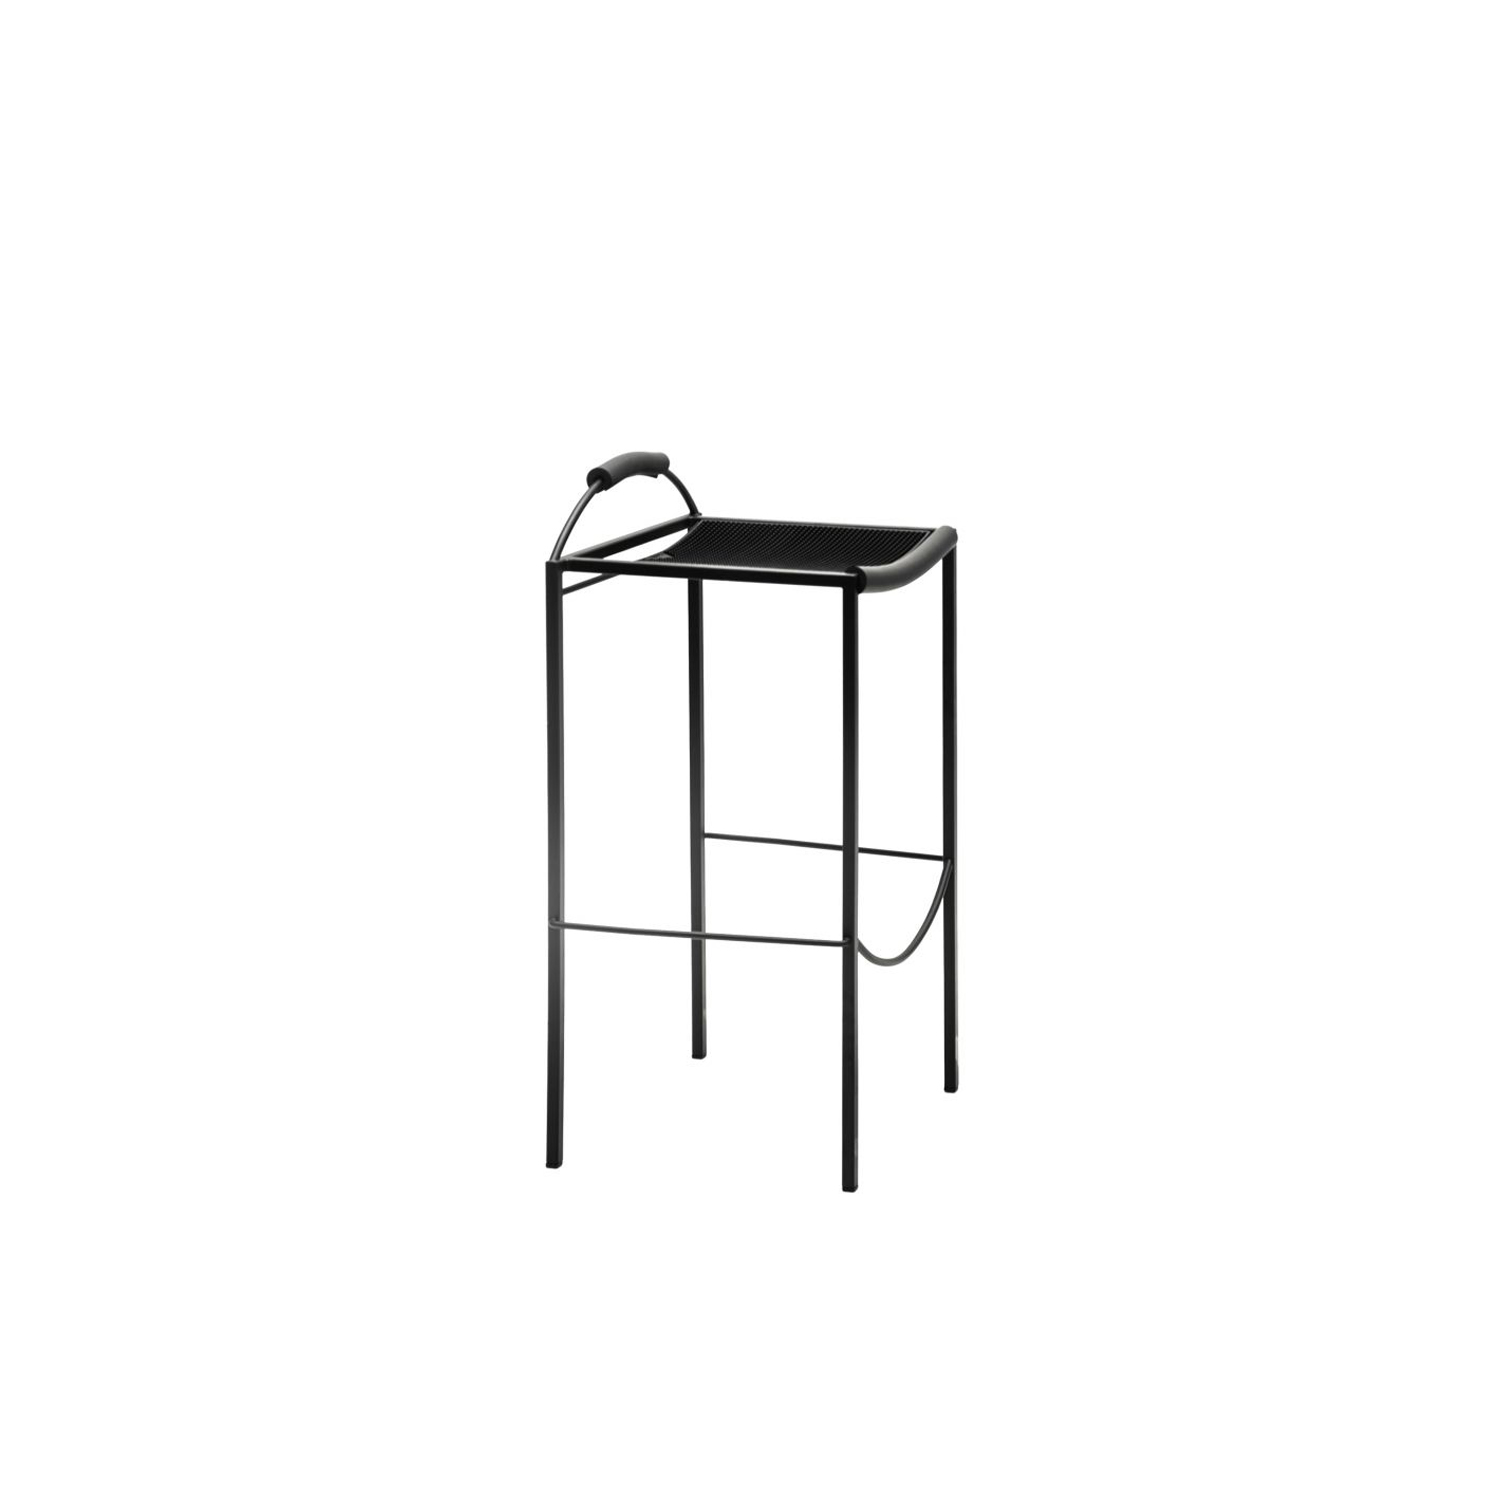 Sgabello Alto - The Sgabello Alto is a minimalist, stackable stool that was designed in 1984 by Maurizio Peregalli. It has a very thin profile so this means that it is suited to office spaces as well as in the home. This elegant stool has an all-black tubular steel frame. The frame is epoxy painted semi opaque black and the seat is made with thousand points rubber. The back is in black extruded rubber  | Matter of Stuff